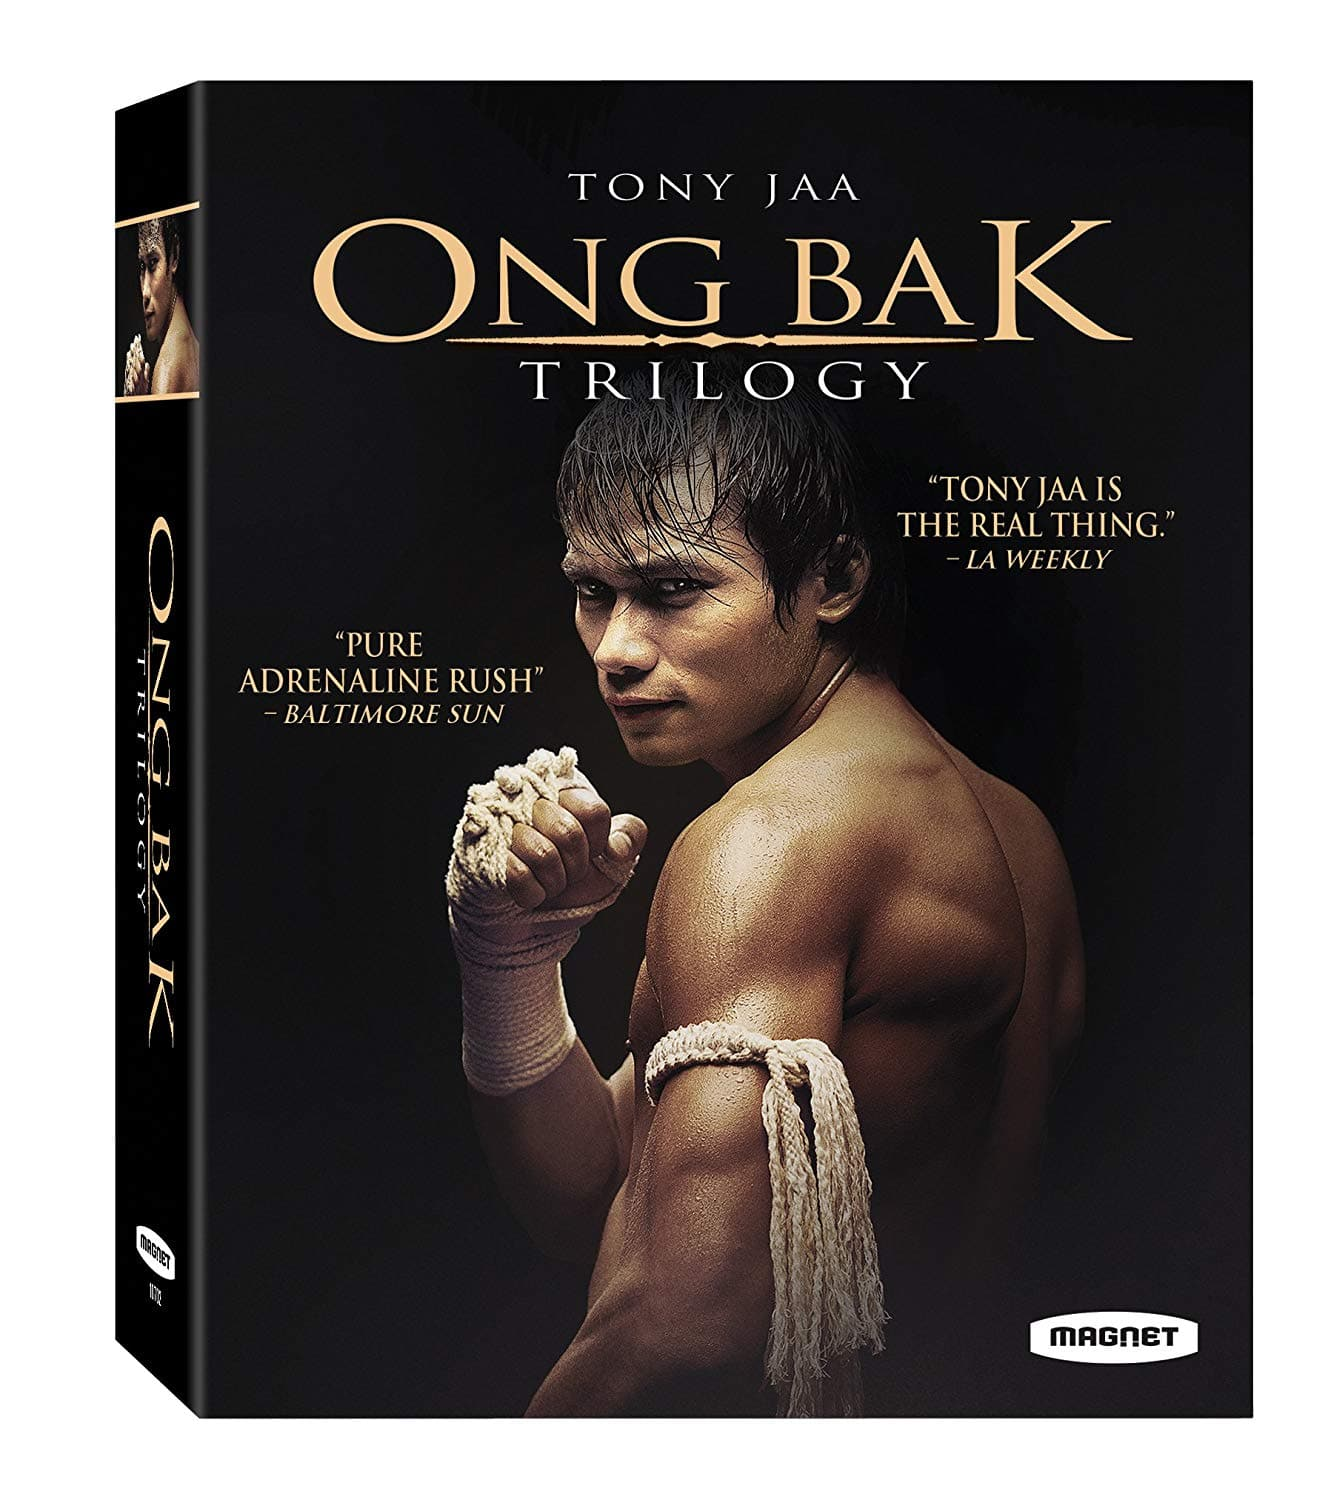 Ong Bak Trilogy (Blu-ray) $8.99 @ Amazon